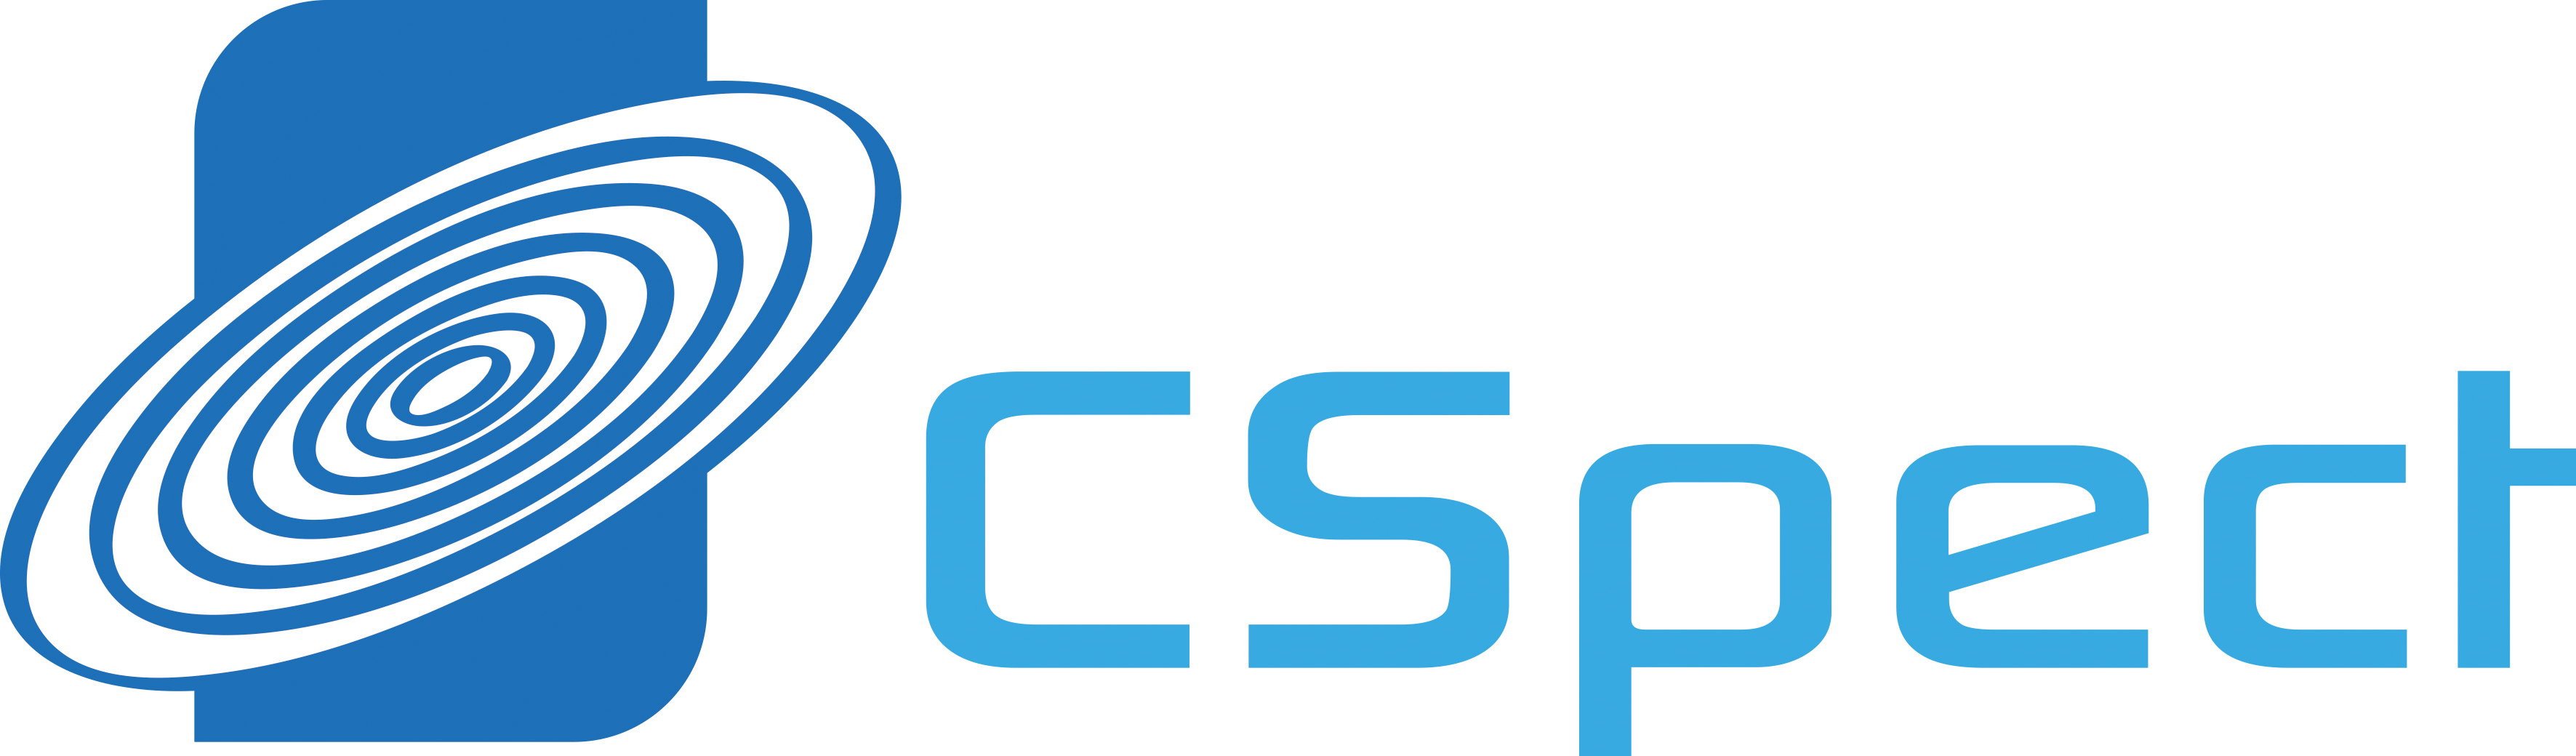 Logo CSpect | Inspectie en controle van machines in de industrie